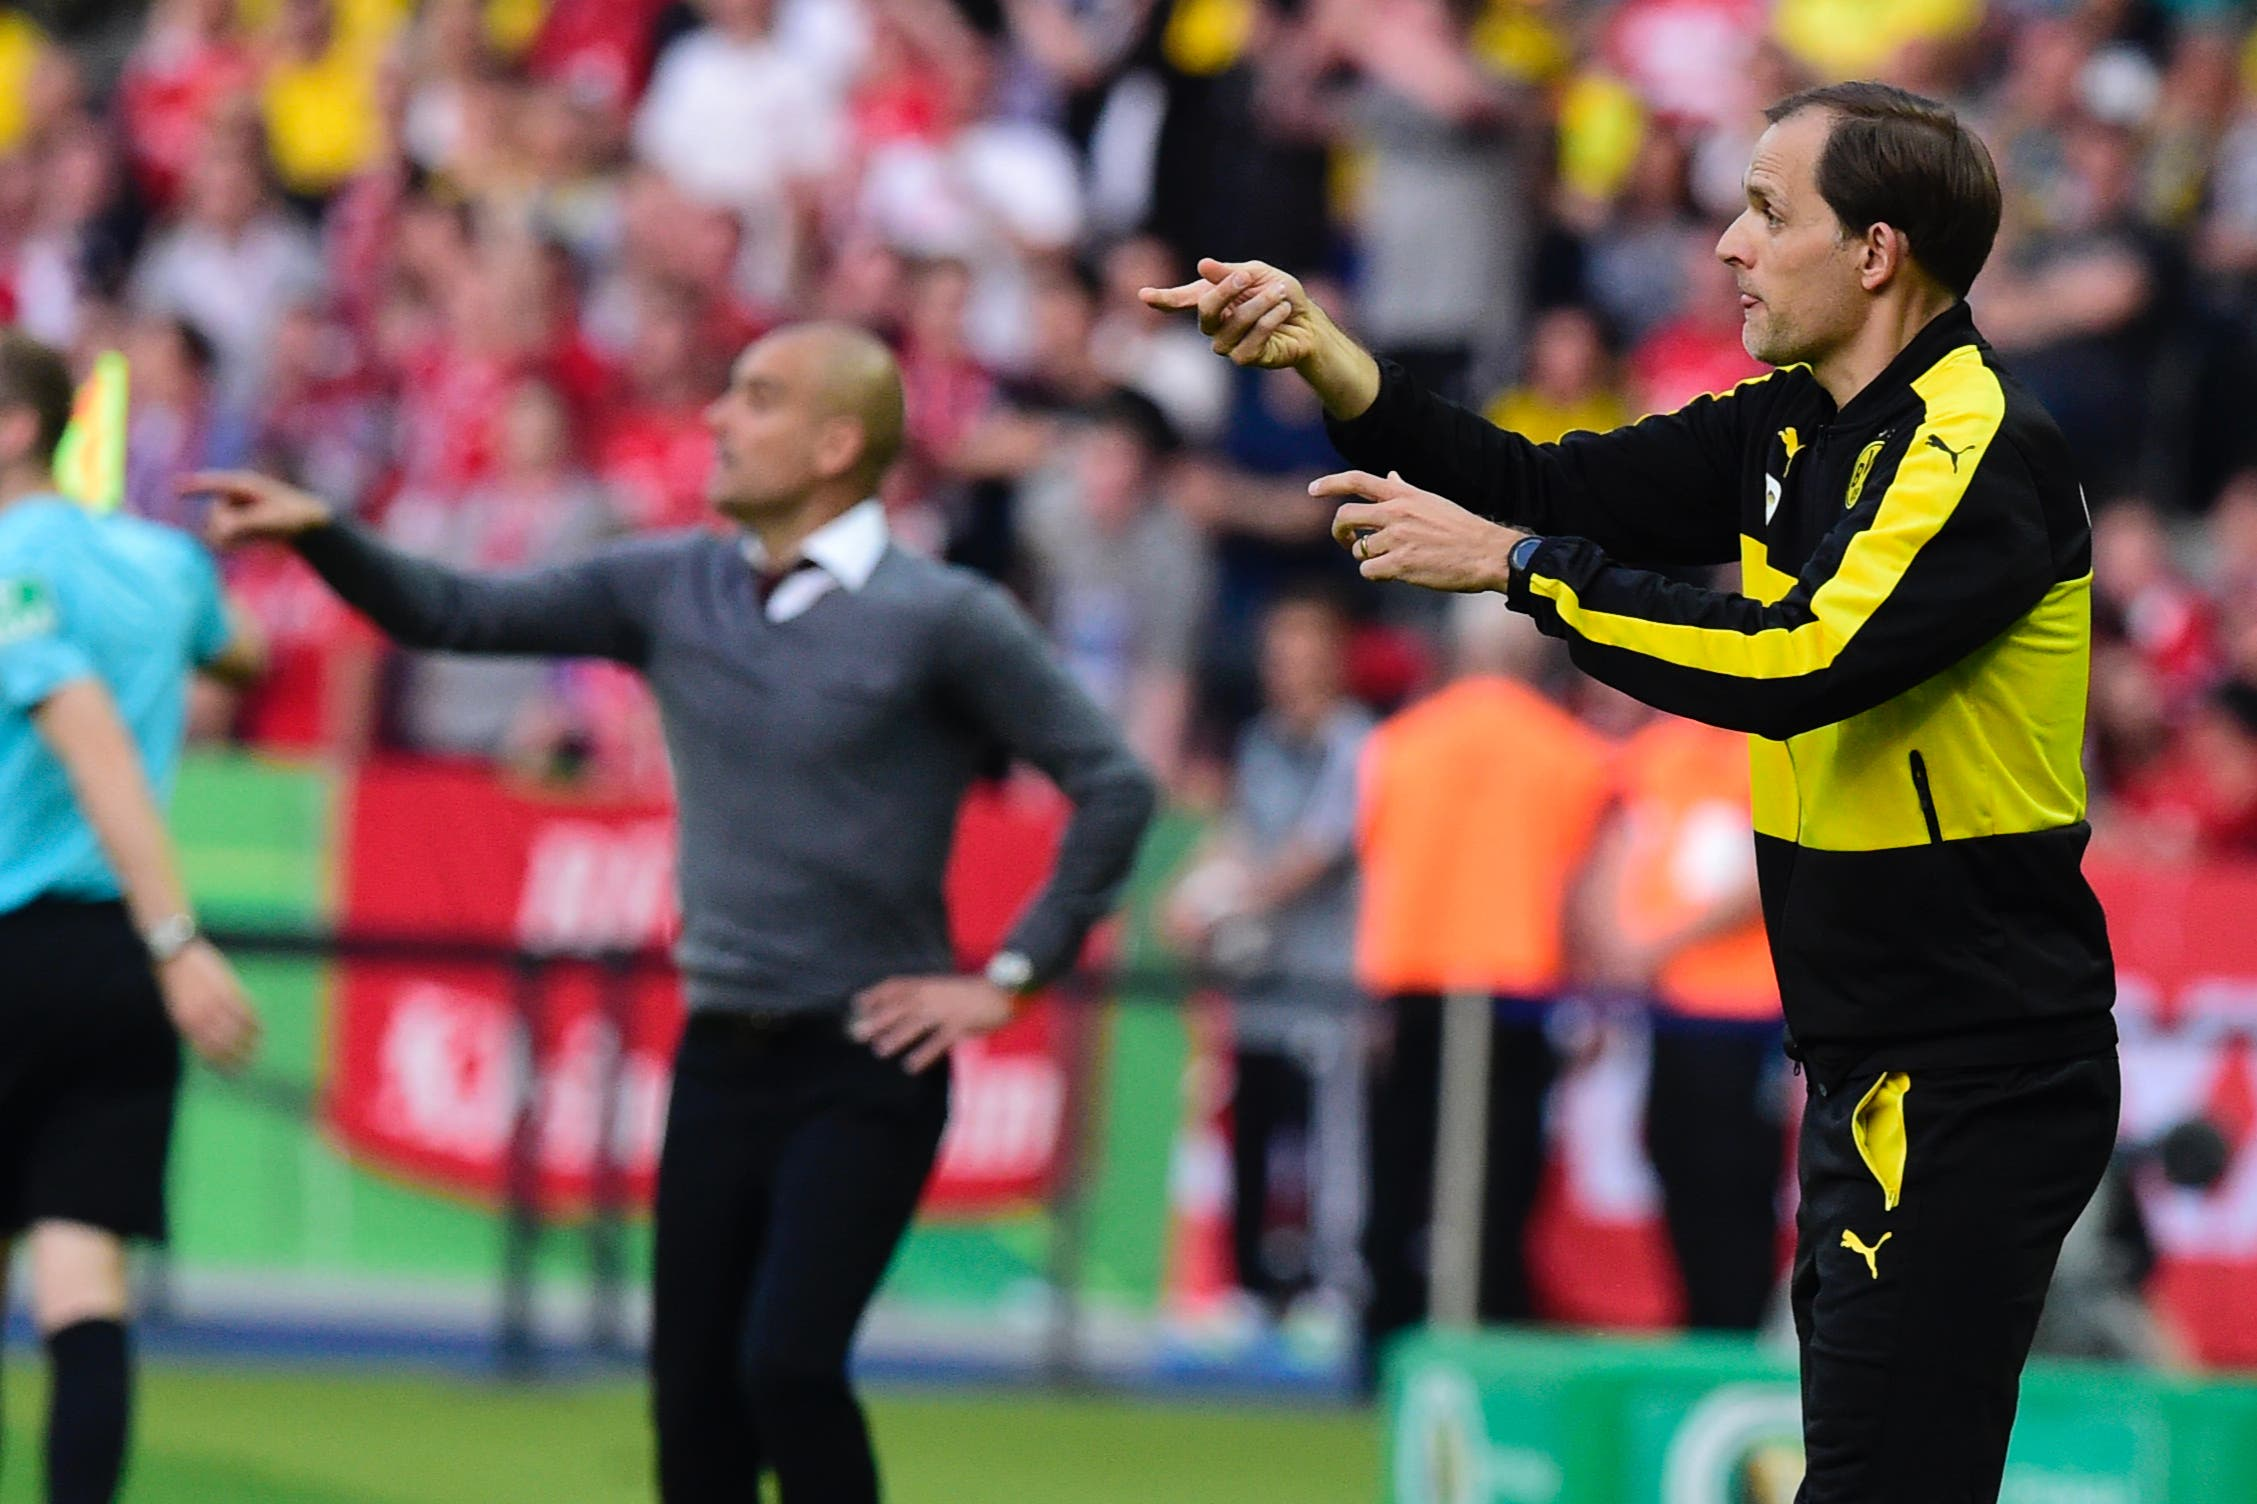 FA Cup semi-final gives Thomas Tuchel and Chelsea chance to lay down challenge to Manchester City